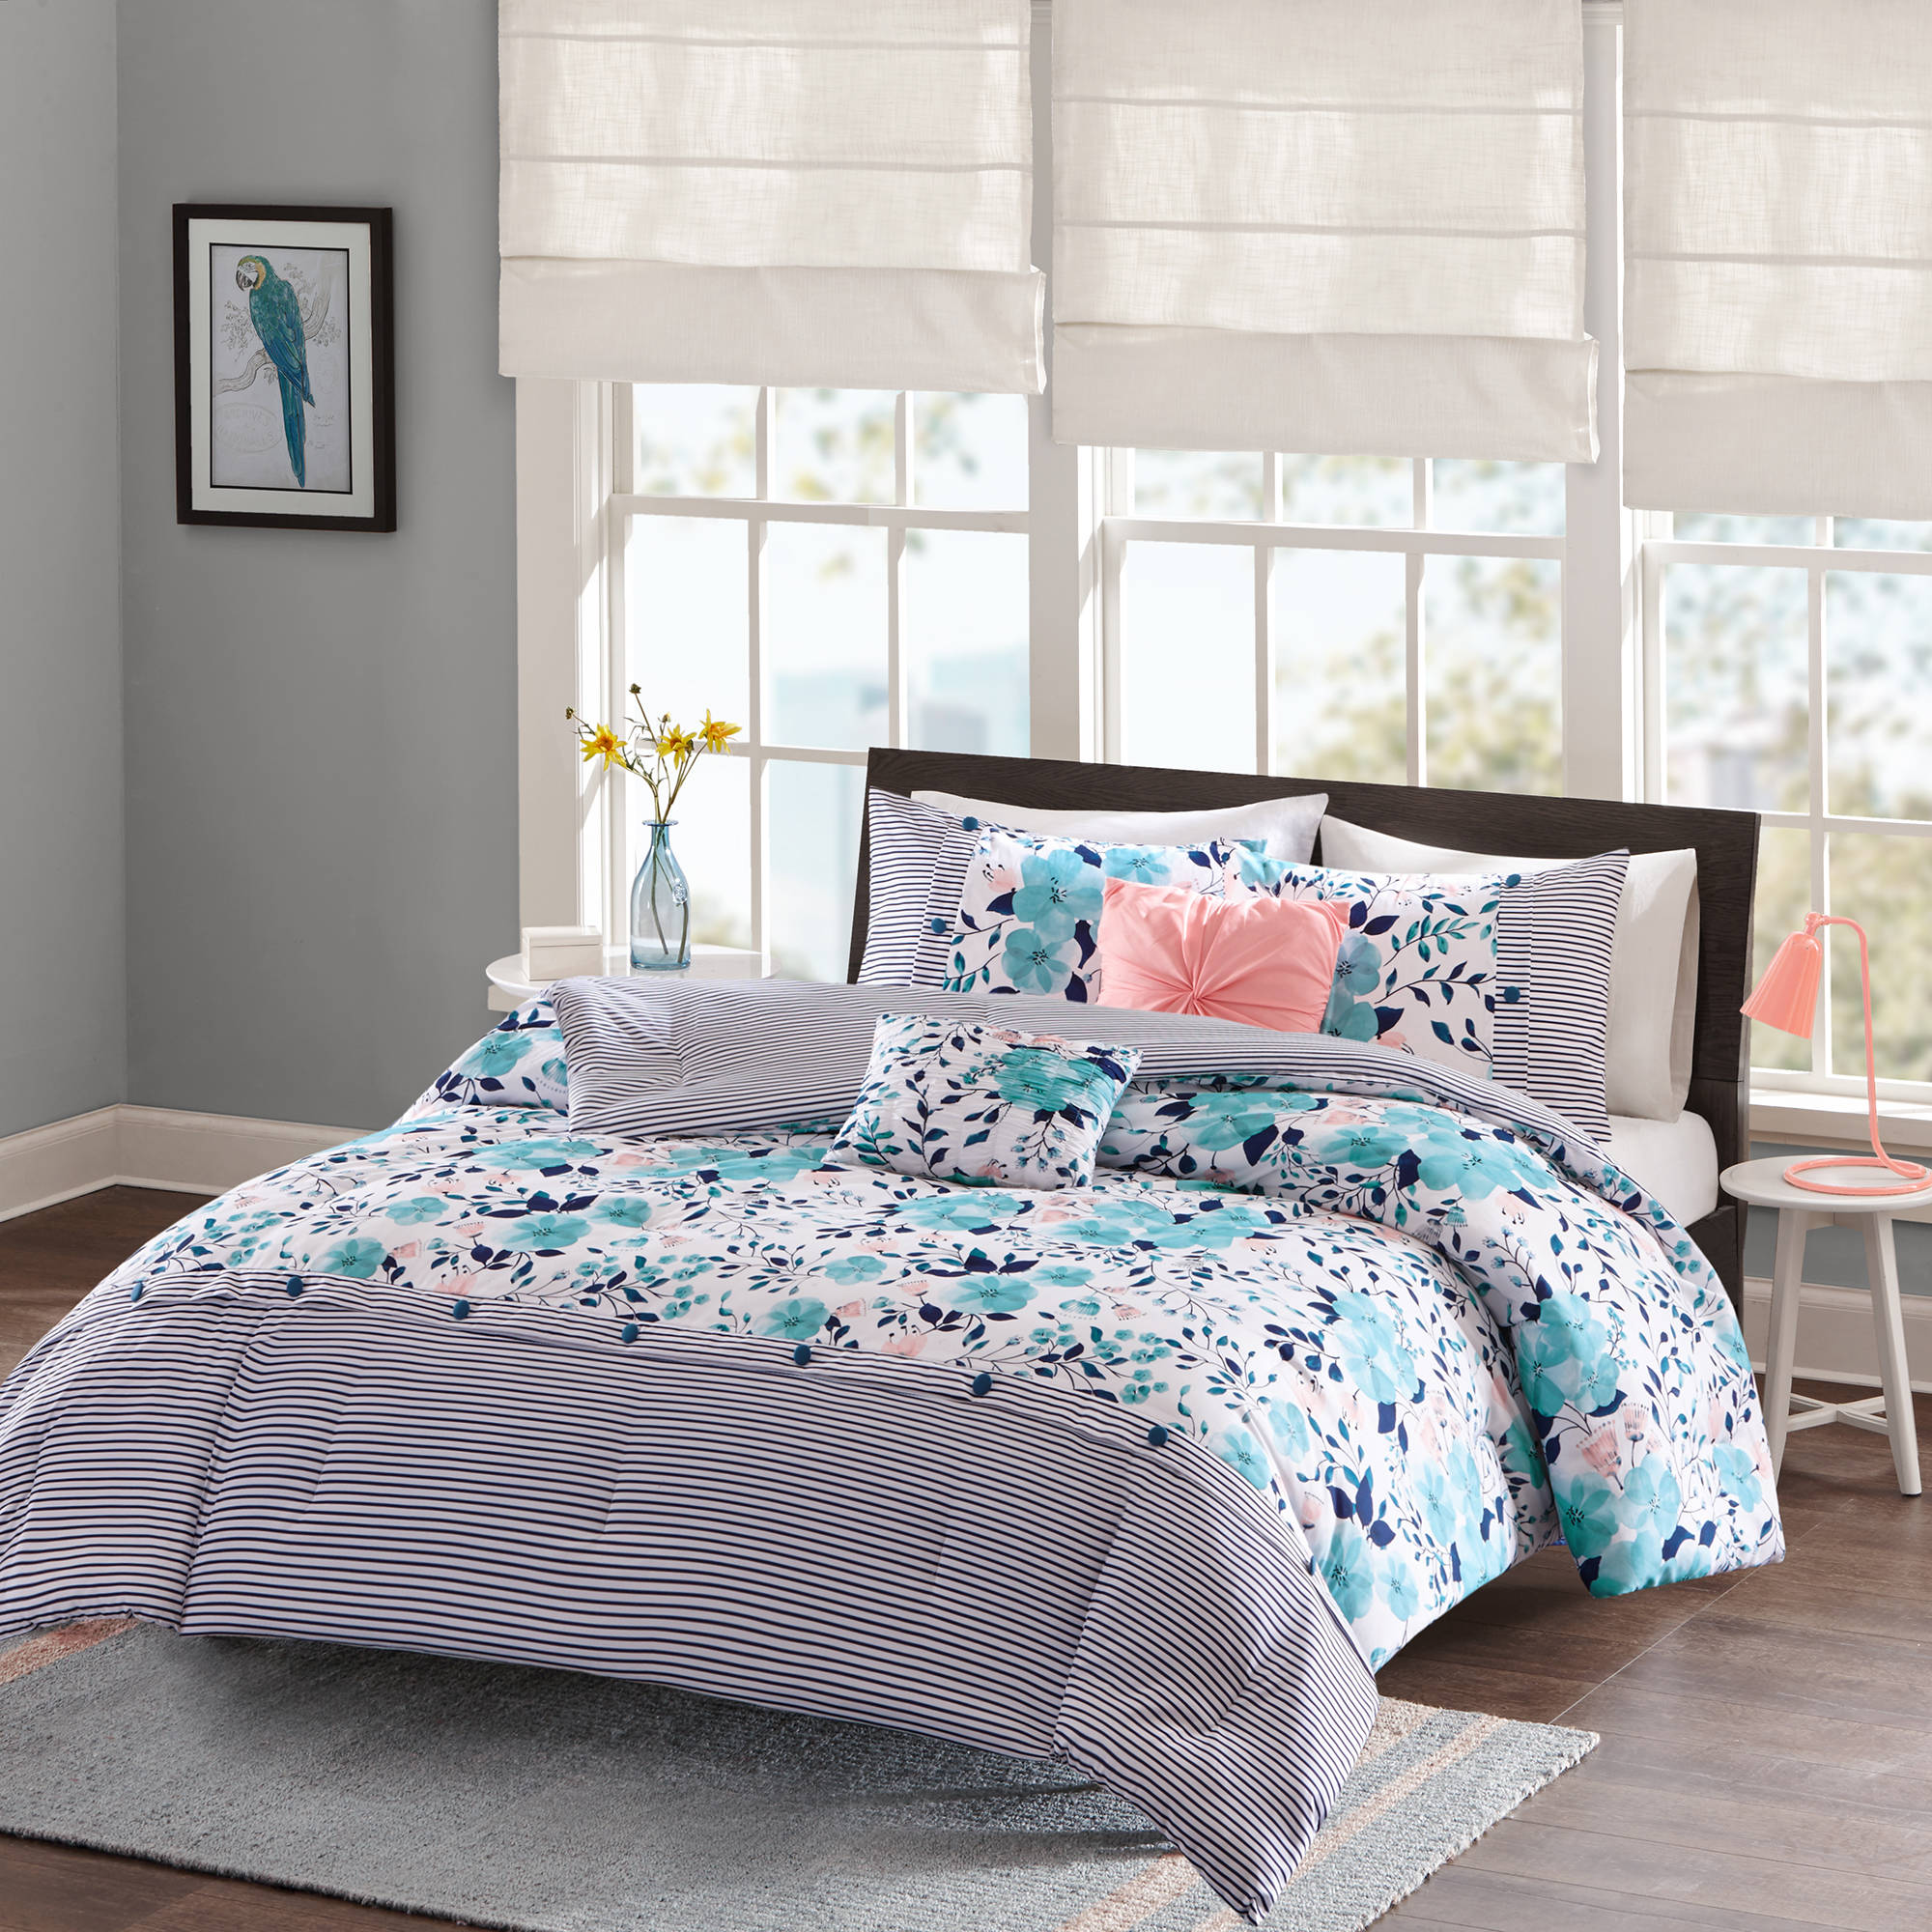 Home Essence Apartment Brie Bedding Coverlet Set by Overstock